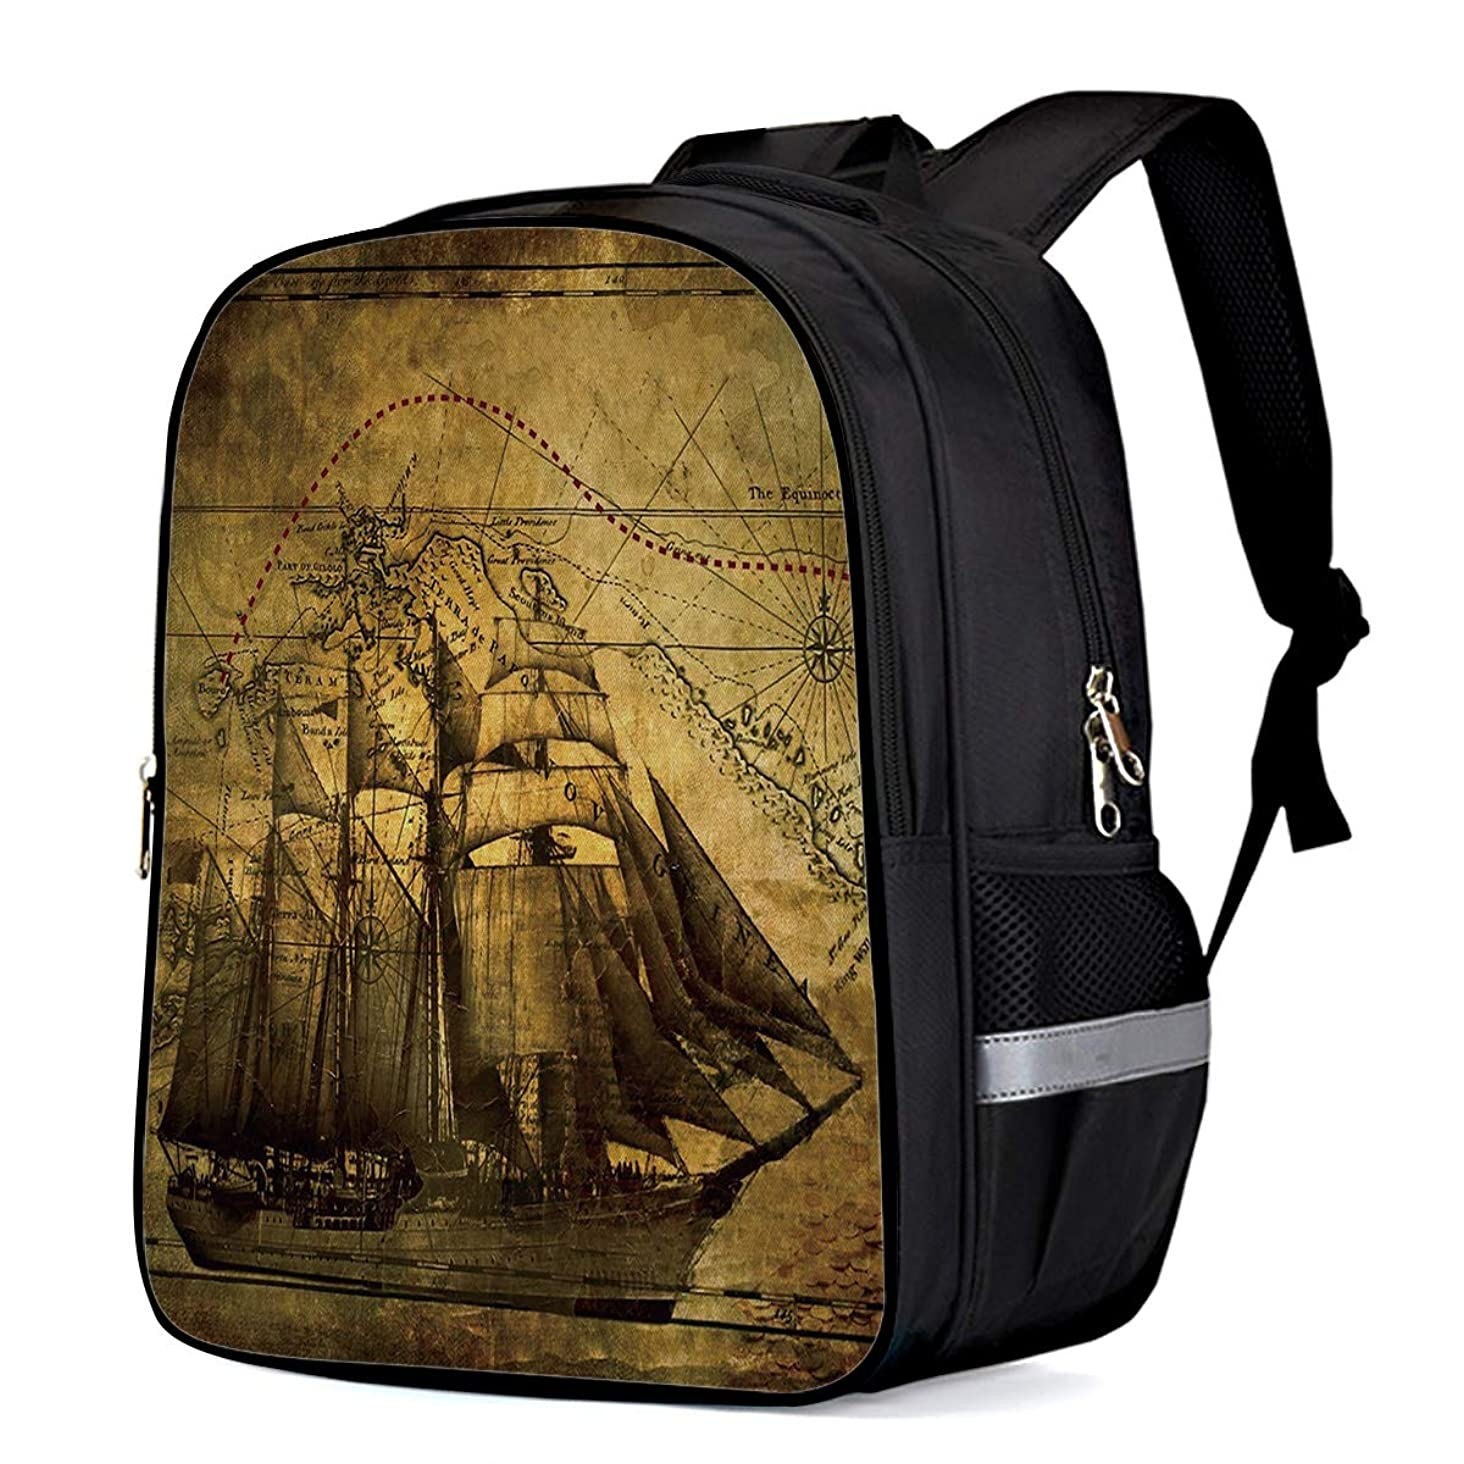 Kids School Backpack Travel Durable Oxford Fabric Daypack, Retro Kraft Paper Sailing Ship Chart Student Schoolbag with Pockets for Boys/Girls 15.7 x 12 x 6.5in